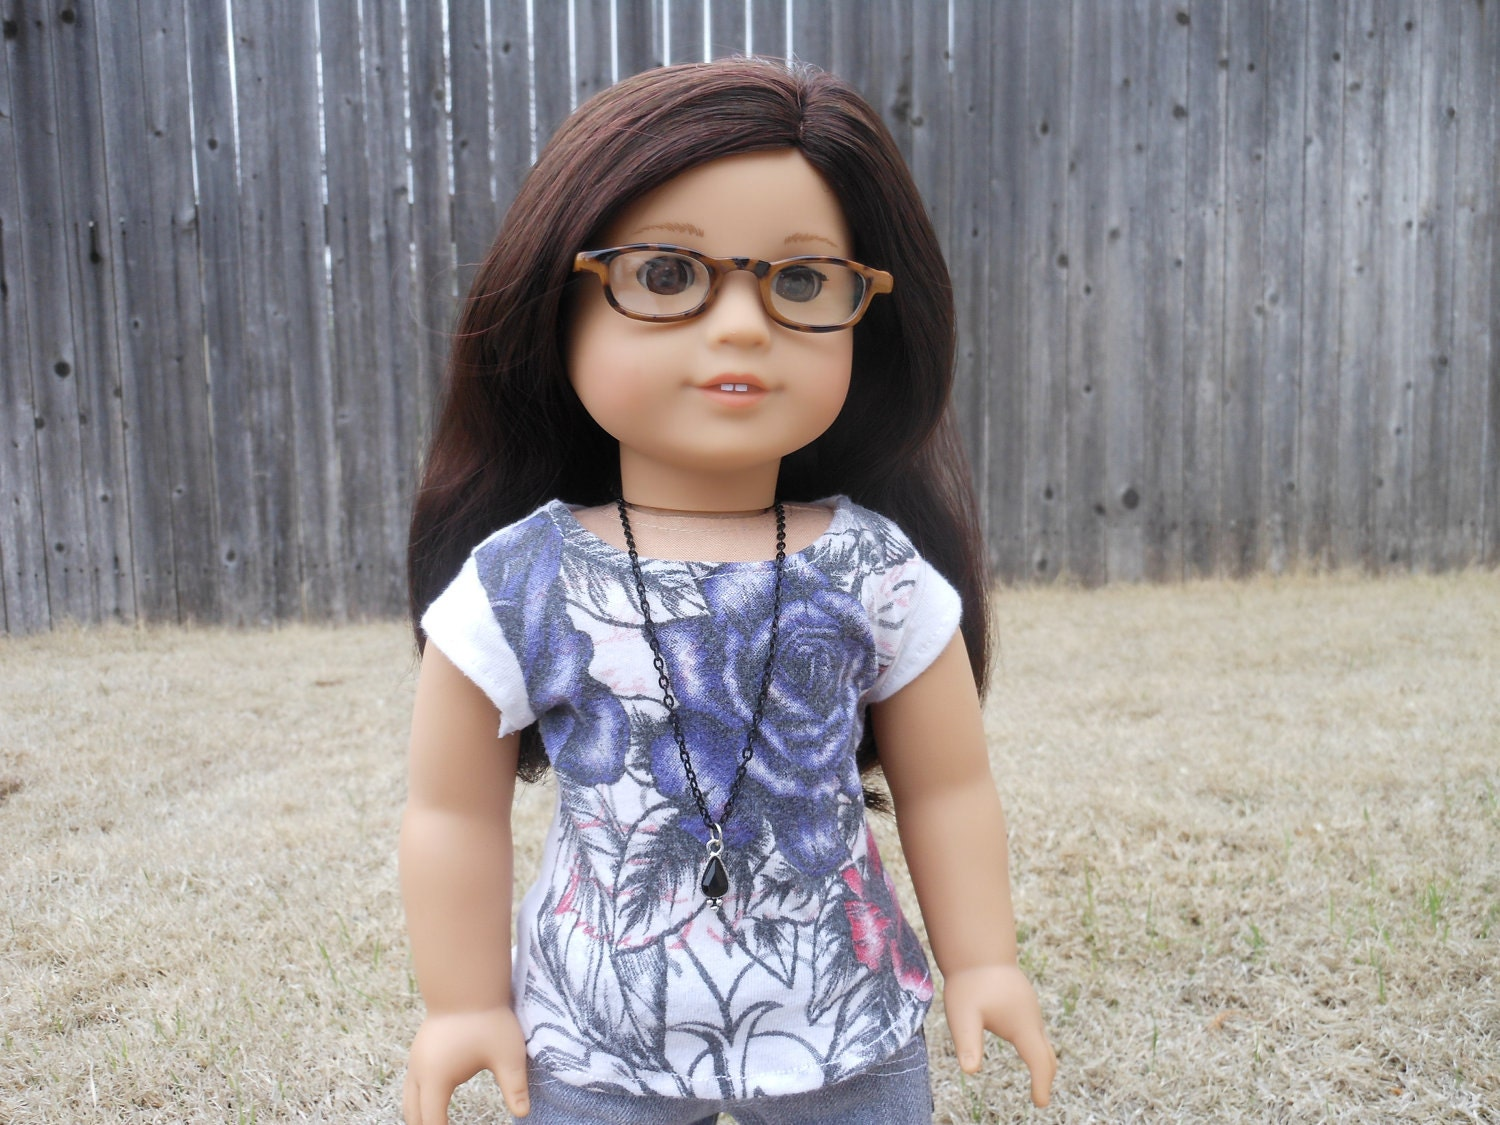 The OOAK Exploding Roses Graphic Tee and Black Chain Necklace for American Girl Dolls